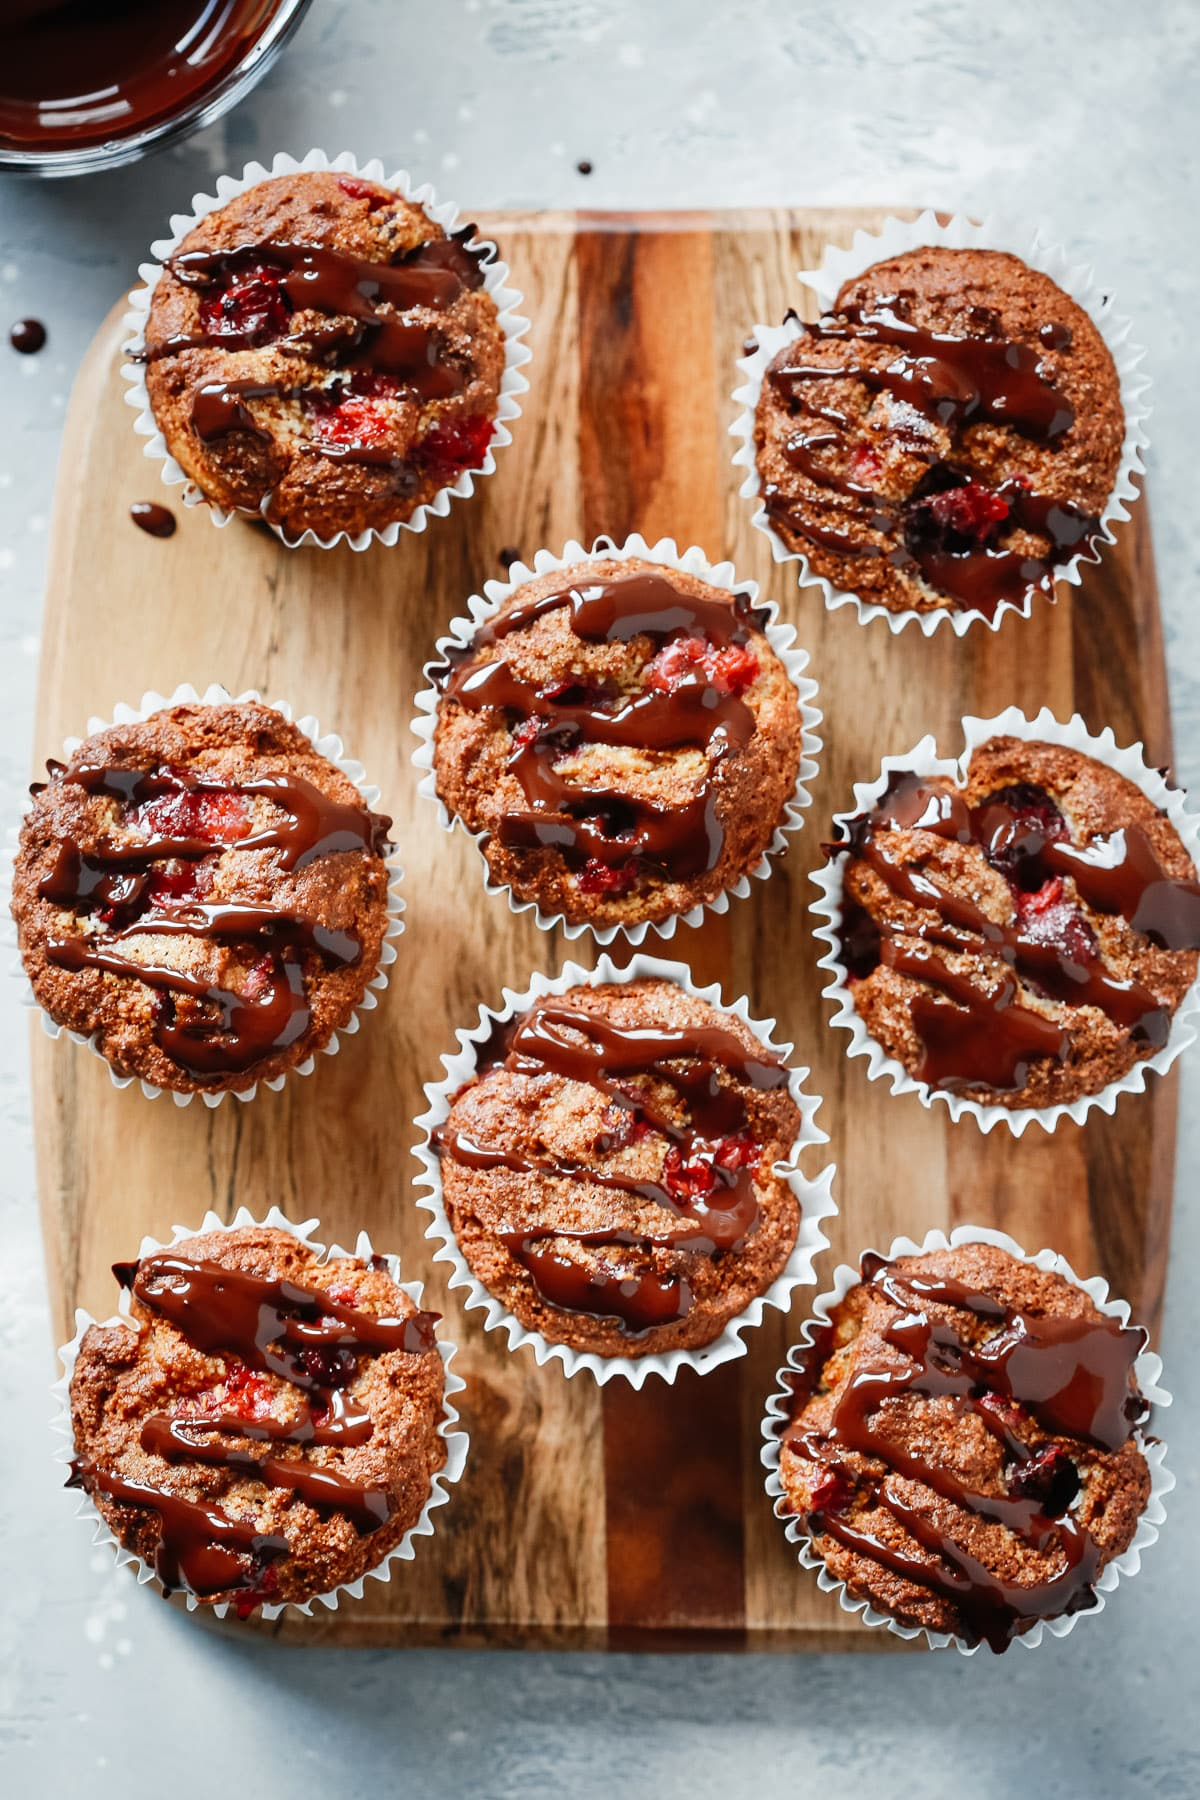 8 Almond Flour Cranberry Muffins on a wood board